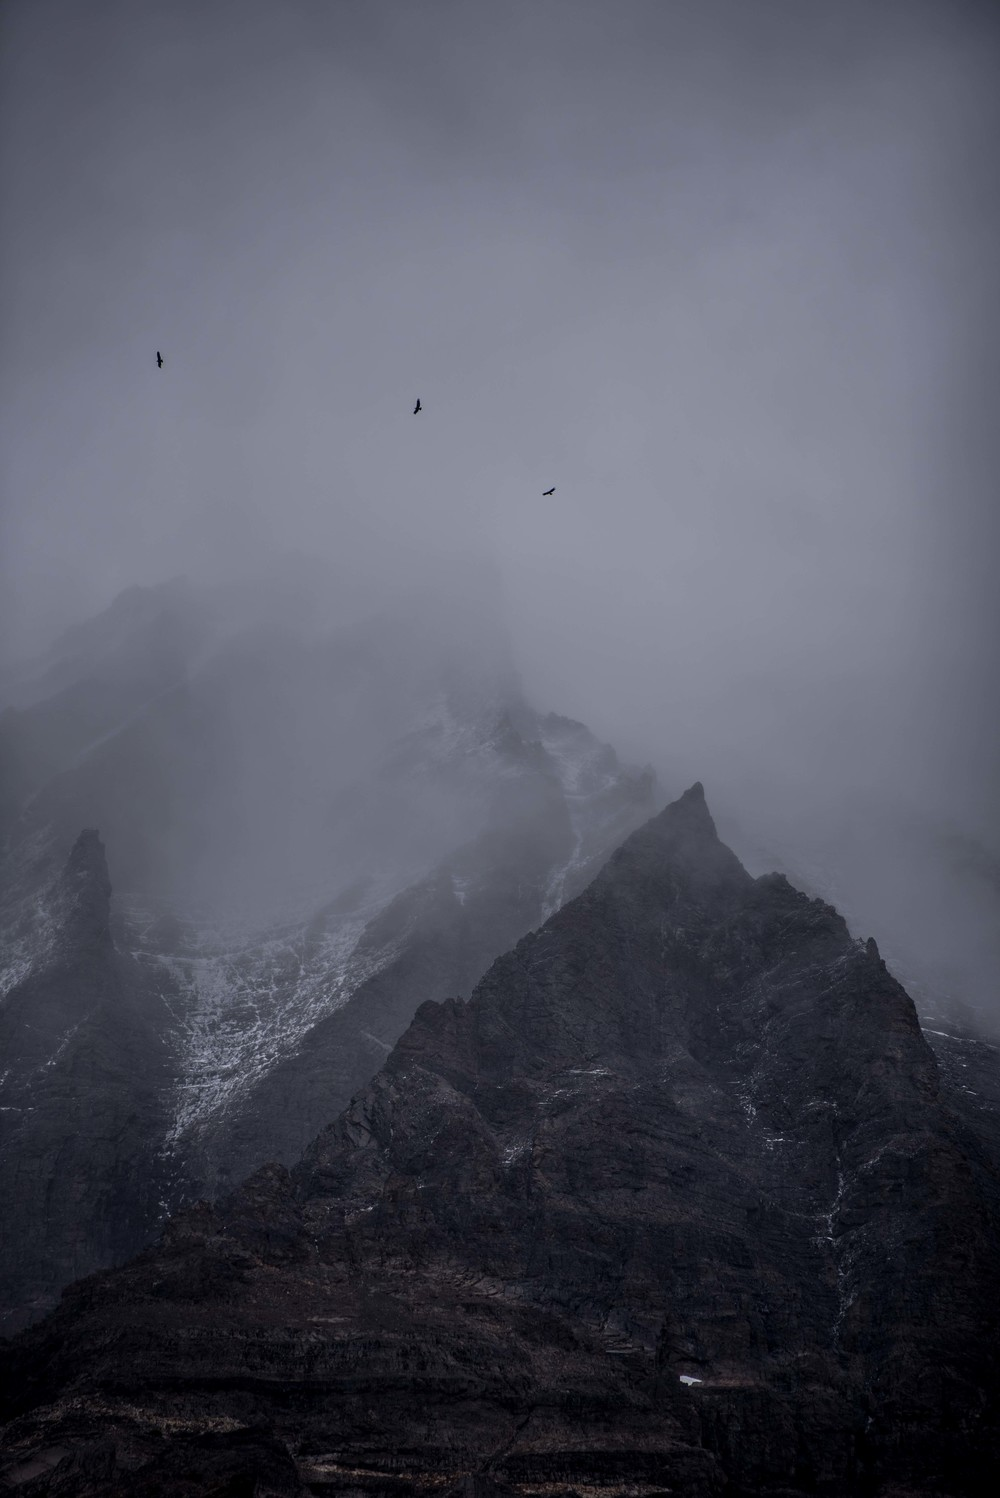 3 Condors hovering below the clouded Cuernos in Torres Del Paine.